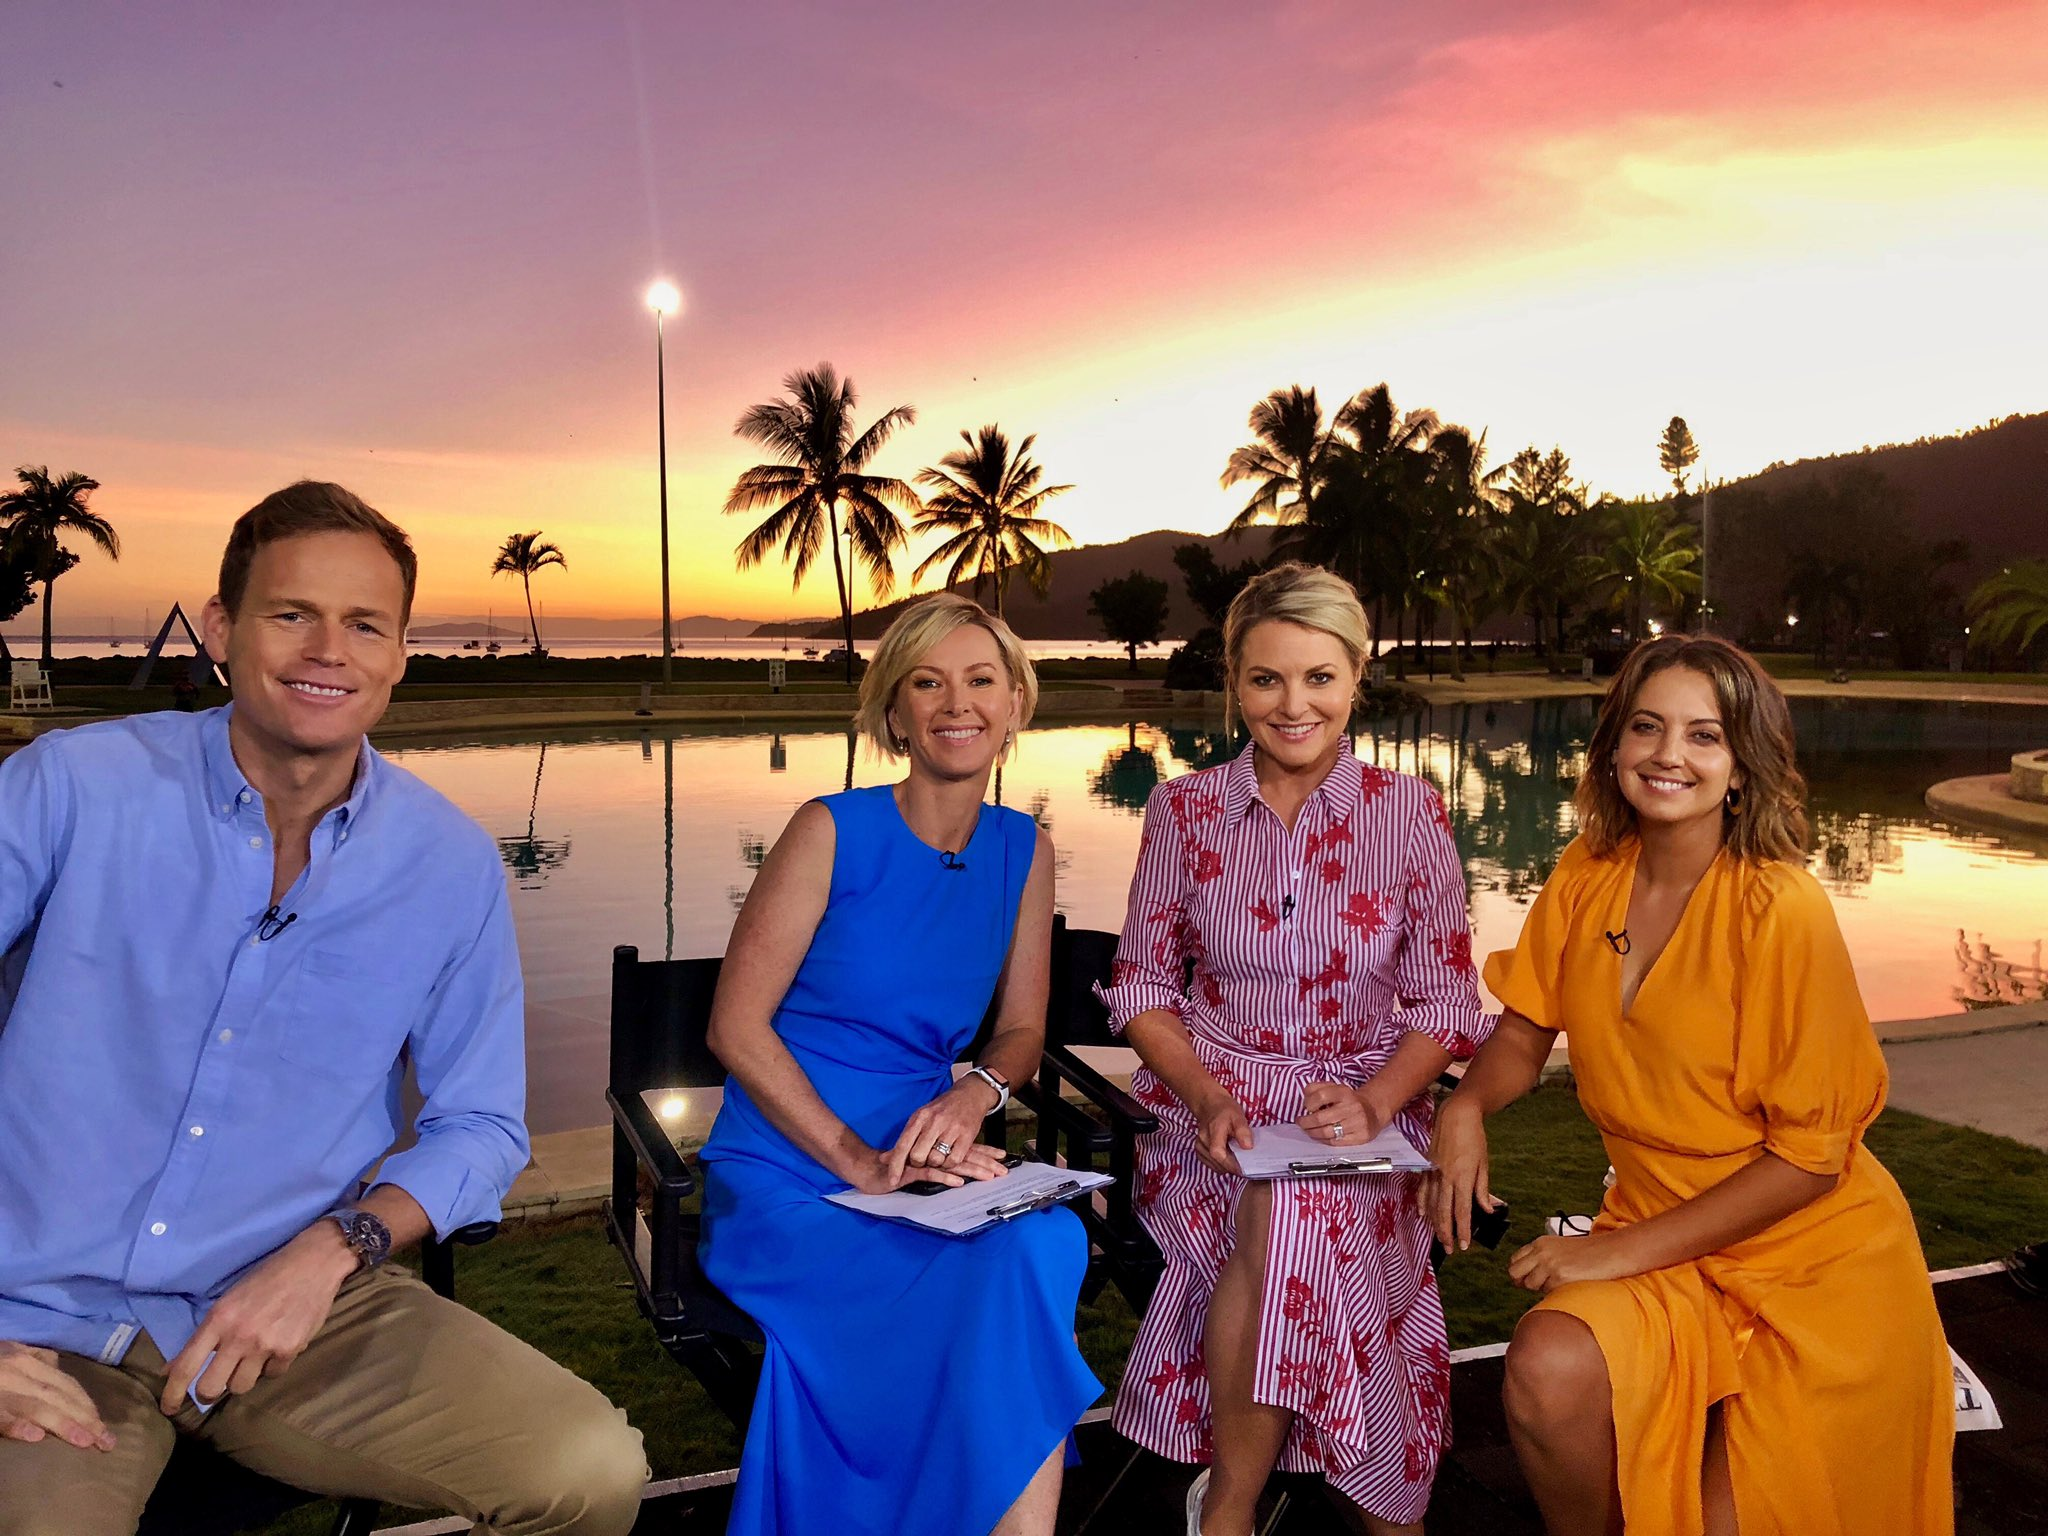 The TODAY show was broadcasting in 'paradise' this week but their ratings were from hell